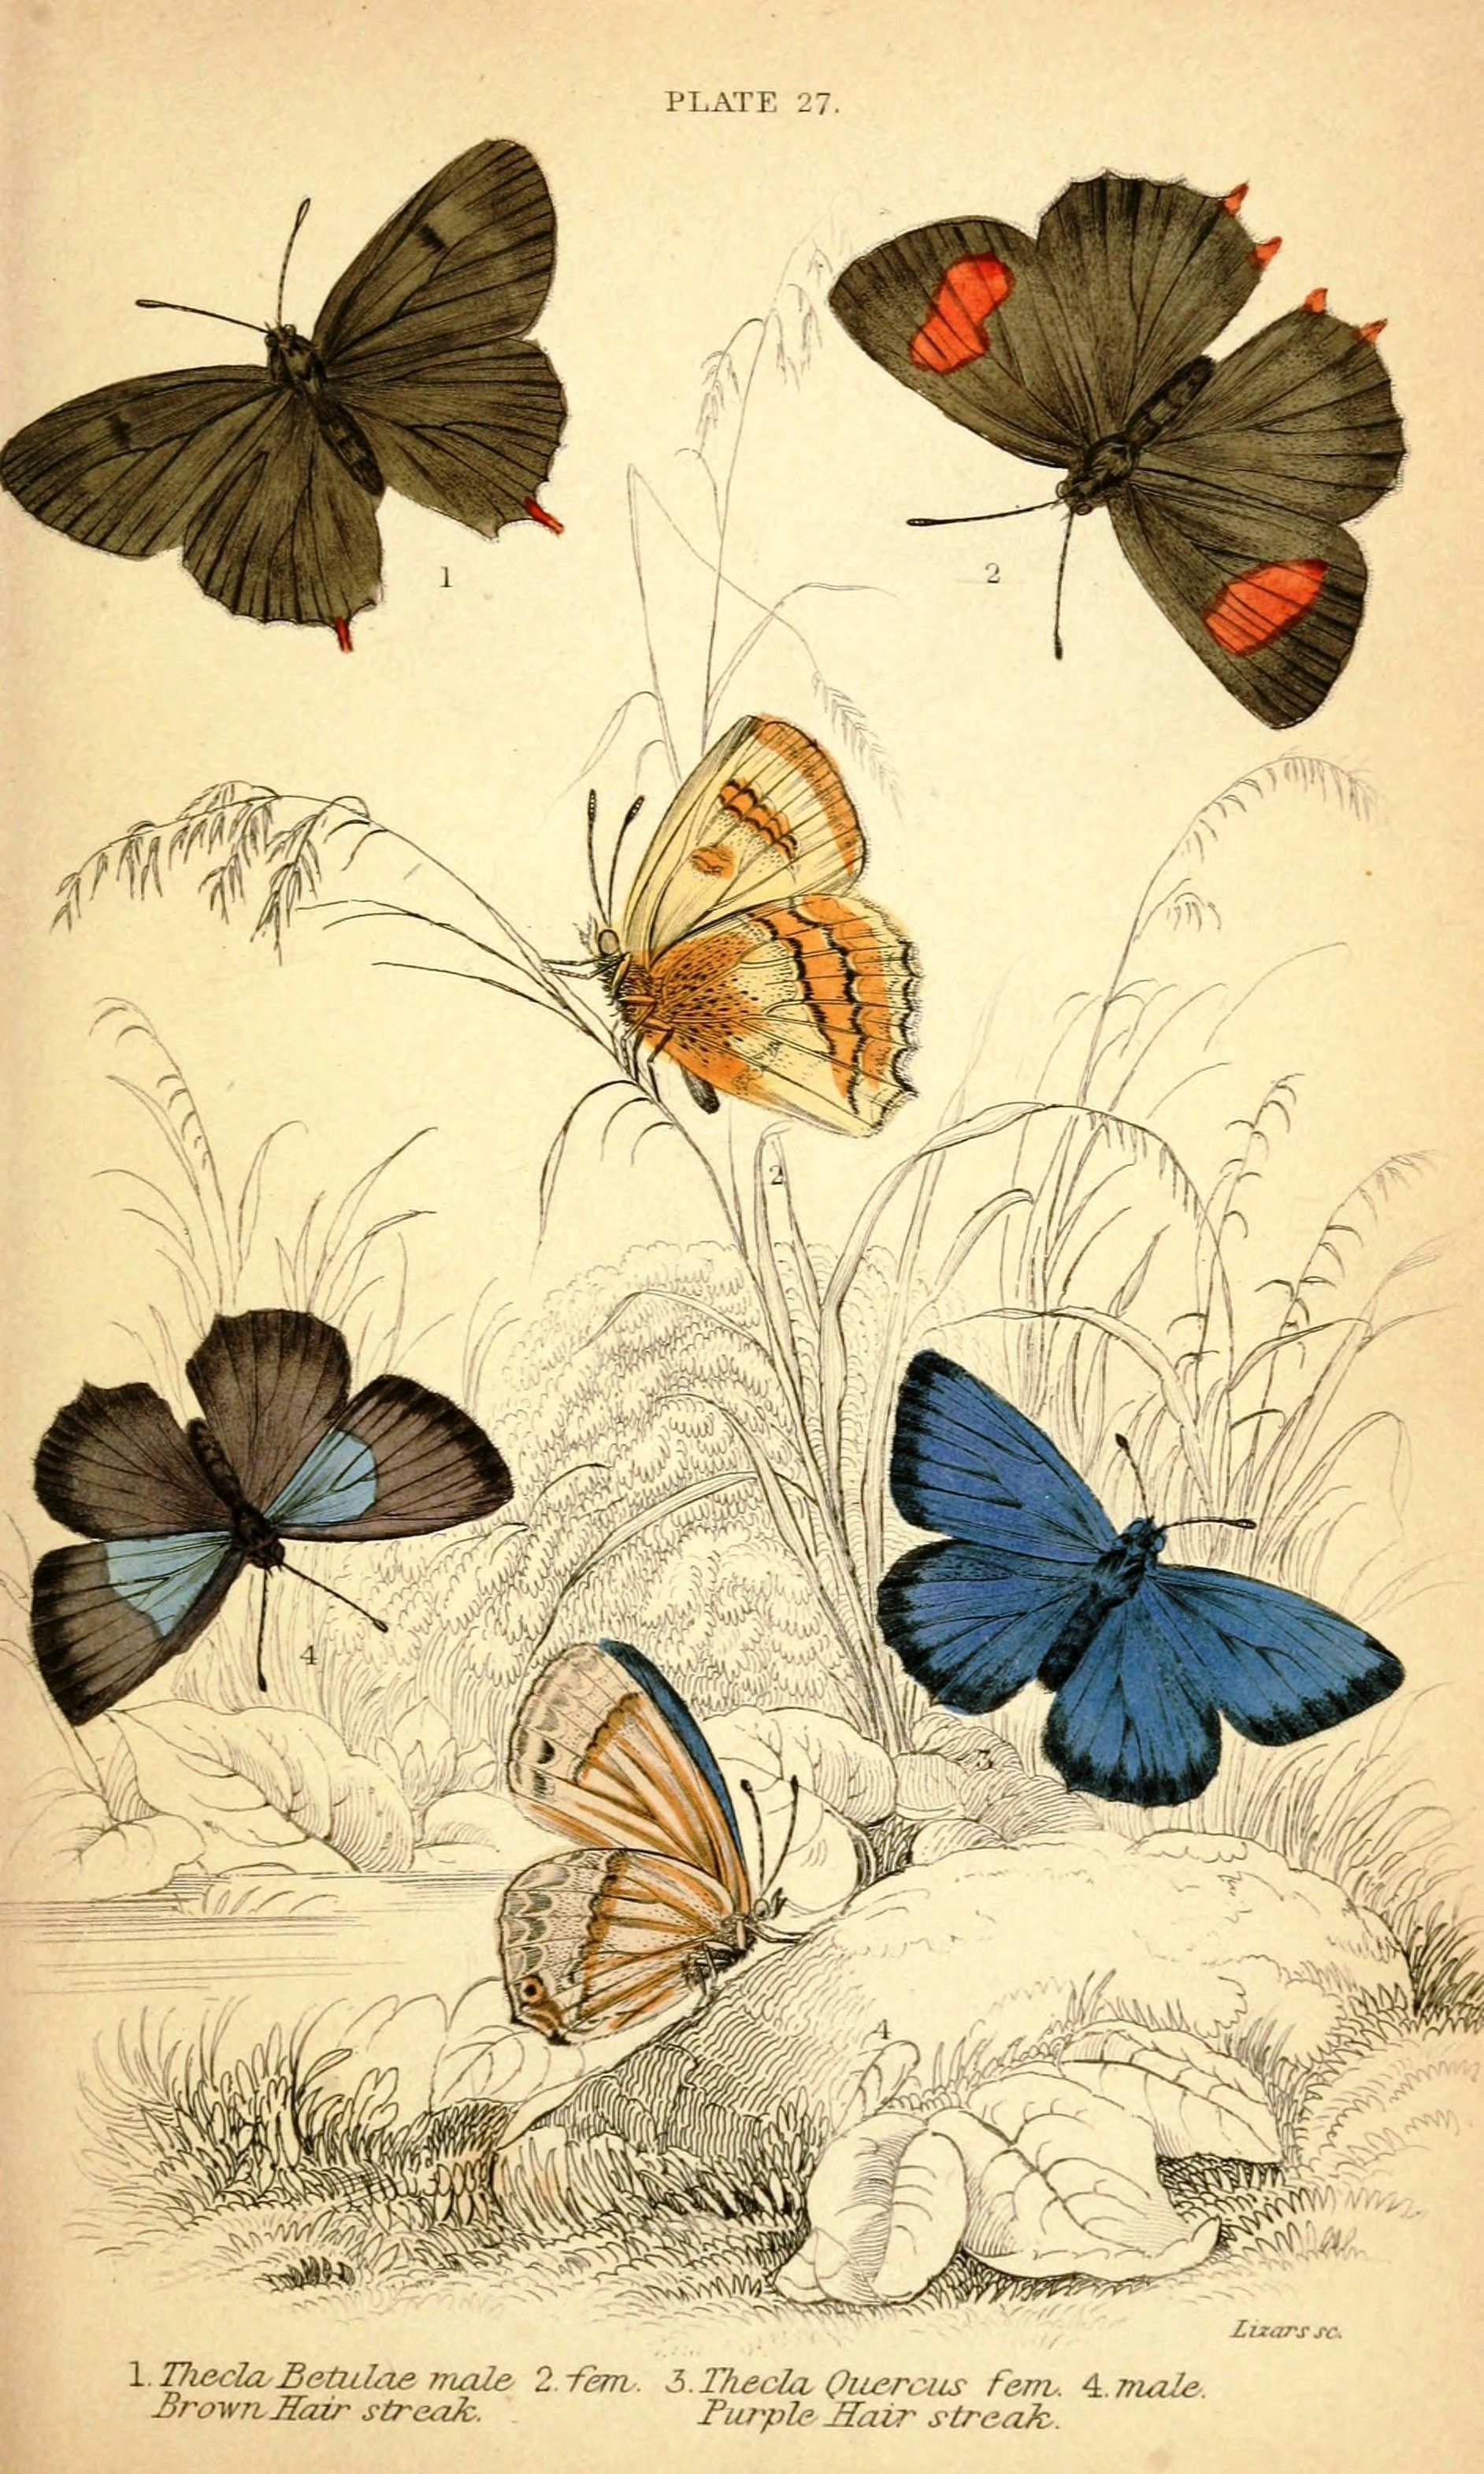 Vintage butterfly illustration | FOTOS PARA TRANSFER | Pinterest ...